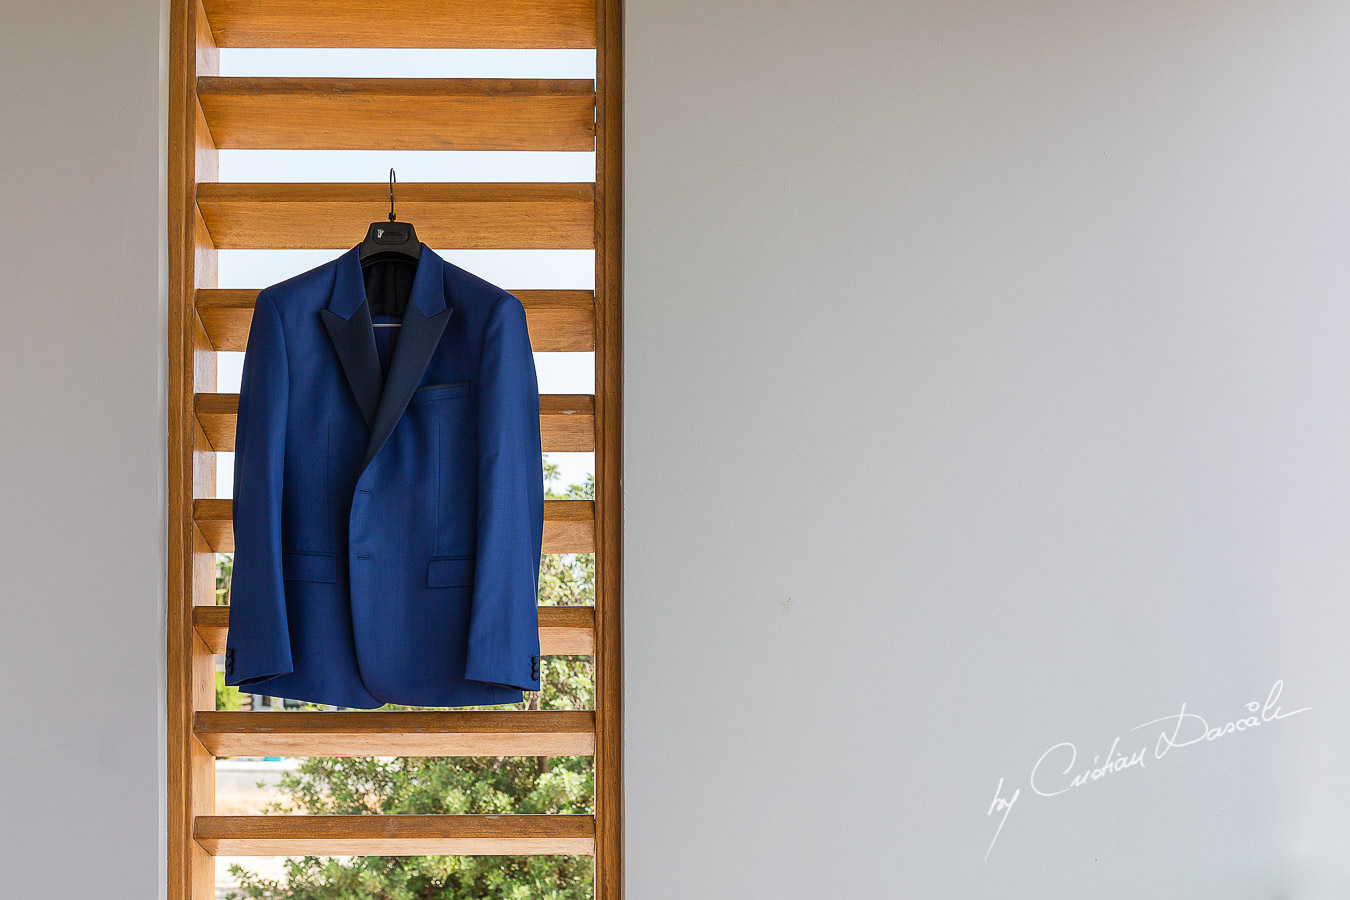 Groom's suit captured at an elegant and romantic wedding at Elias Beach Hotel by Cristian Dascalu.